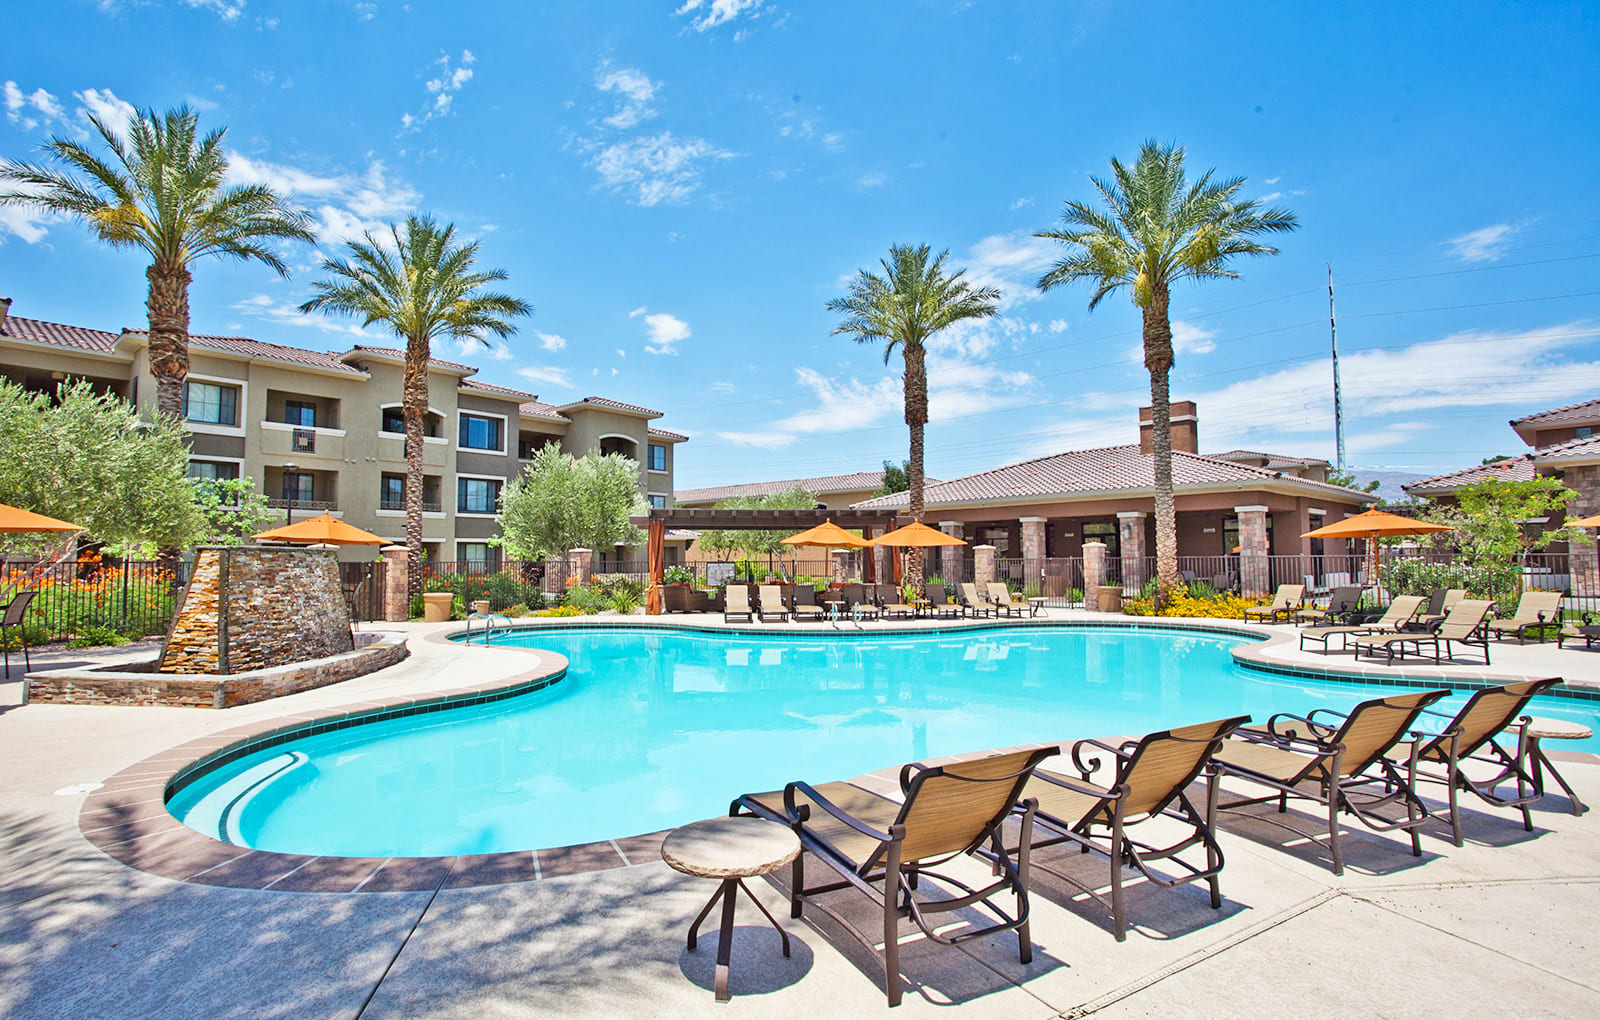 Centennial At 5th Apartments Top Rated Apartments In North Las Vegas